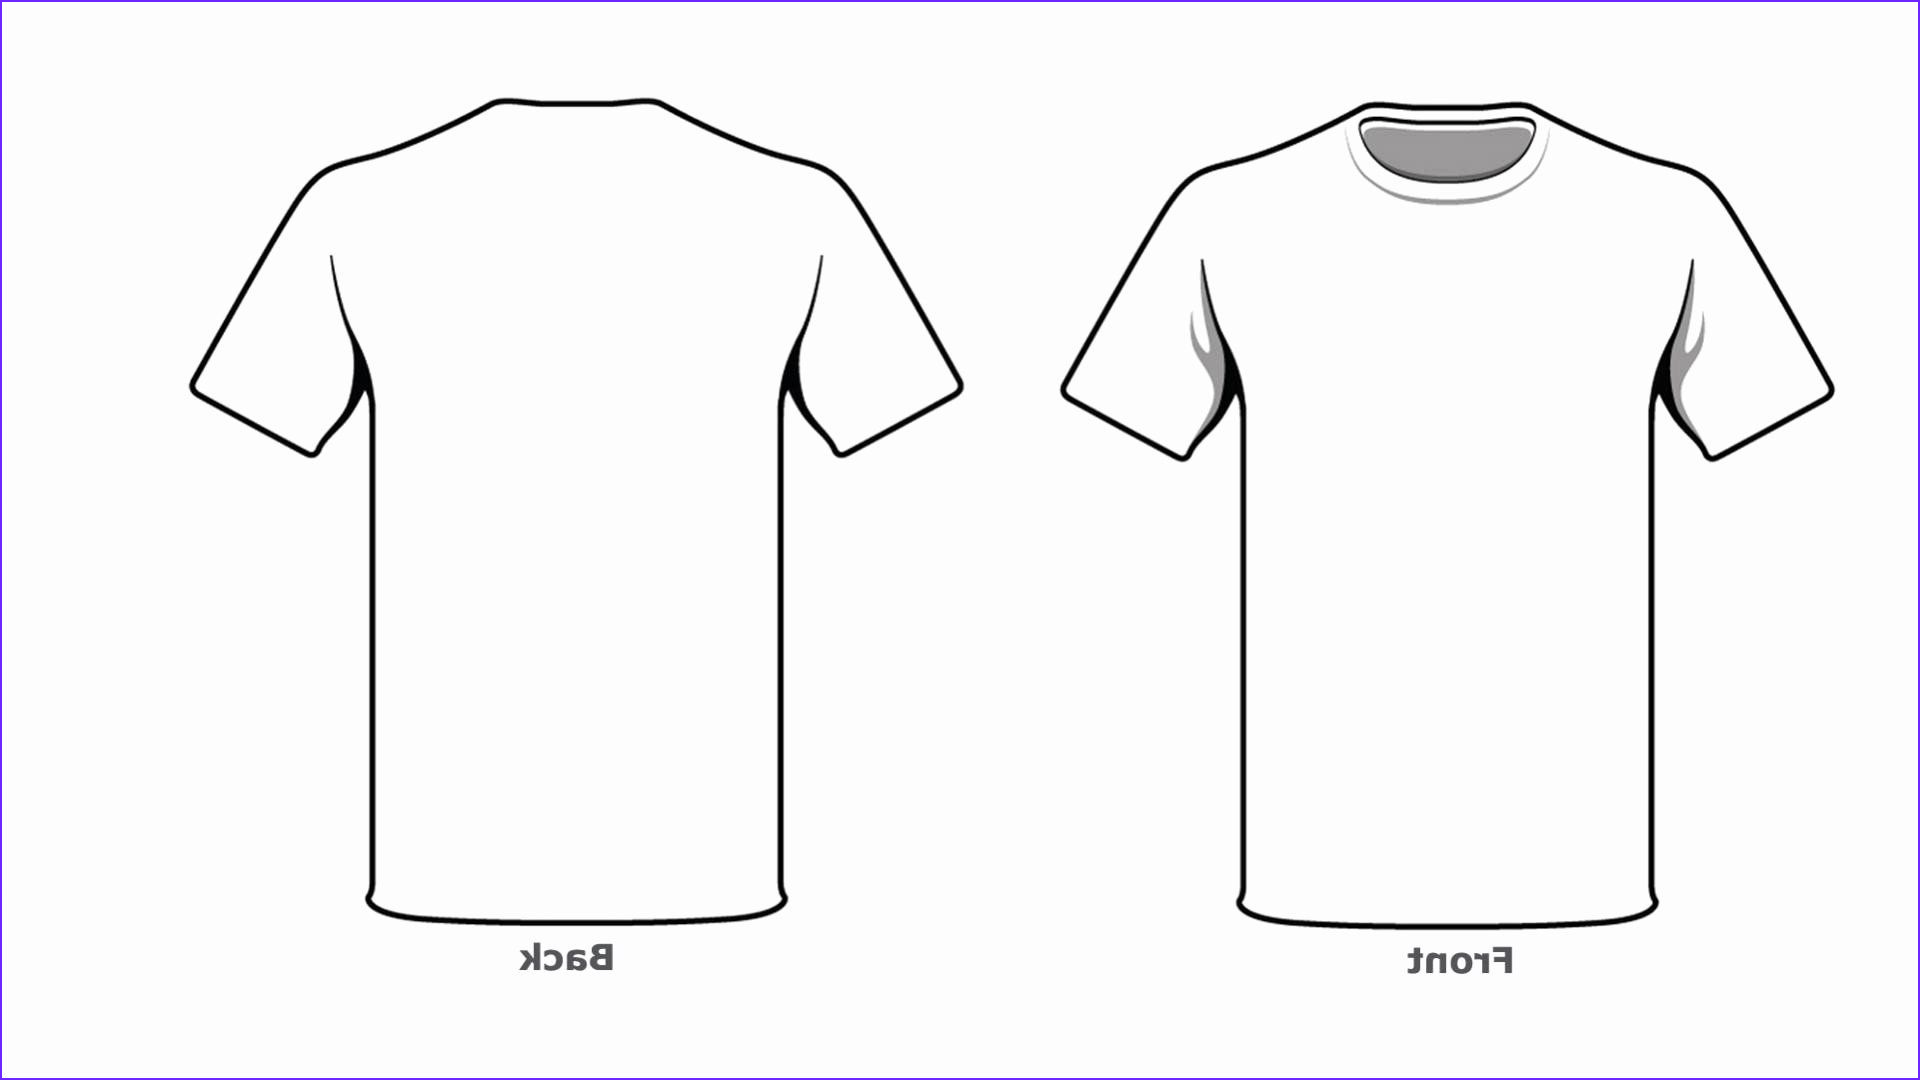 Blank T Shirt Coloring Page Luxury Image Shirt Coloring Design New Inspirational Design Clipart T